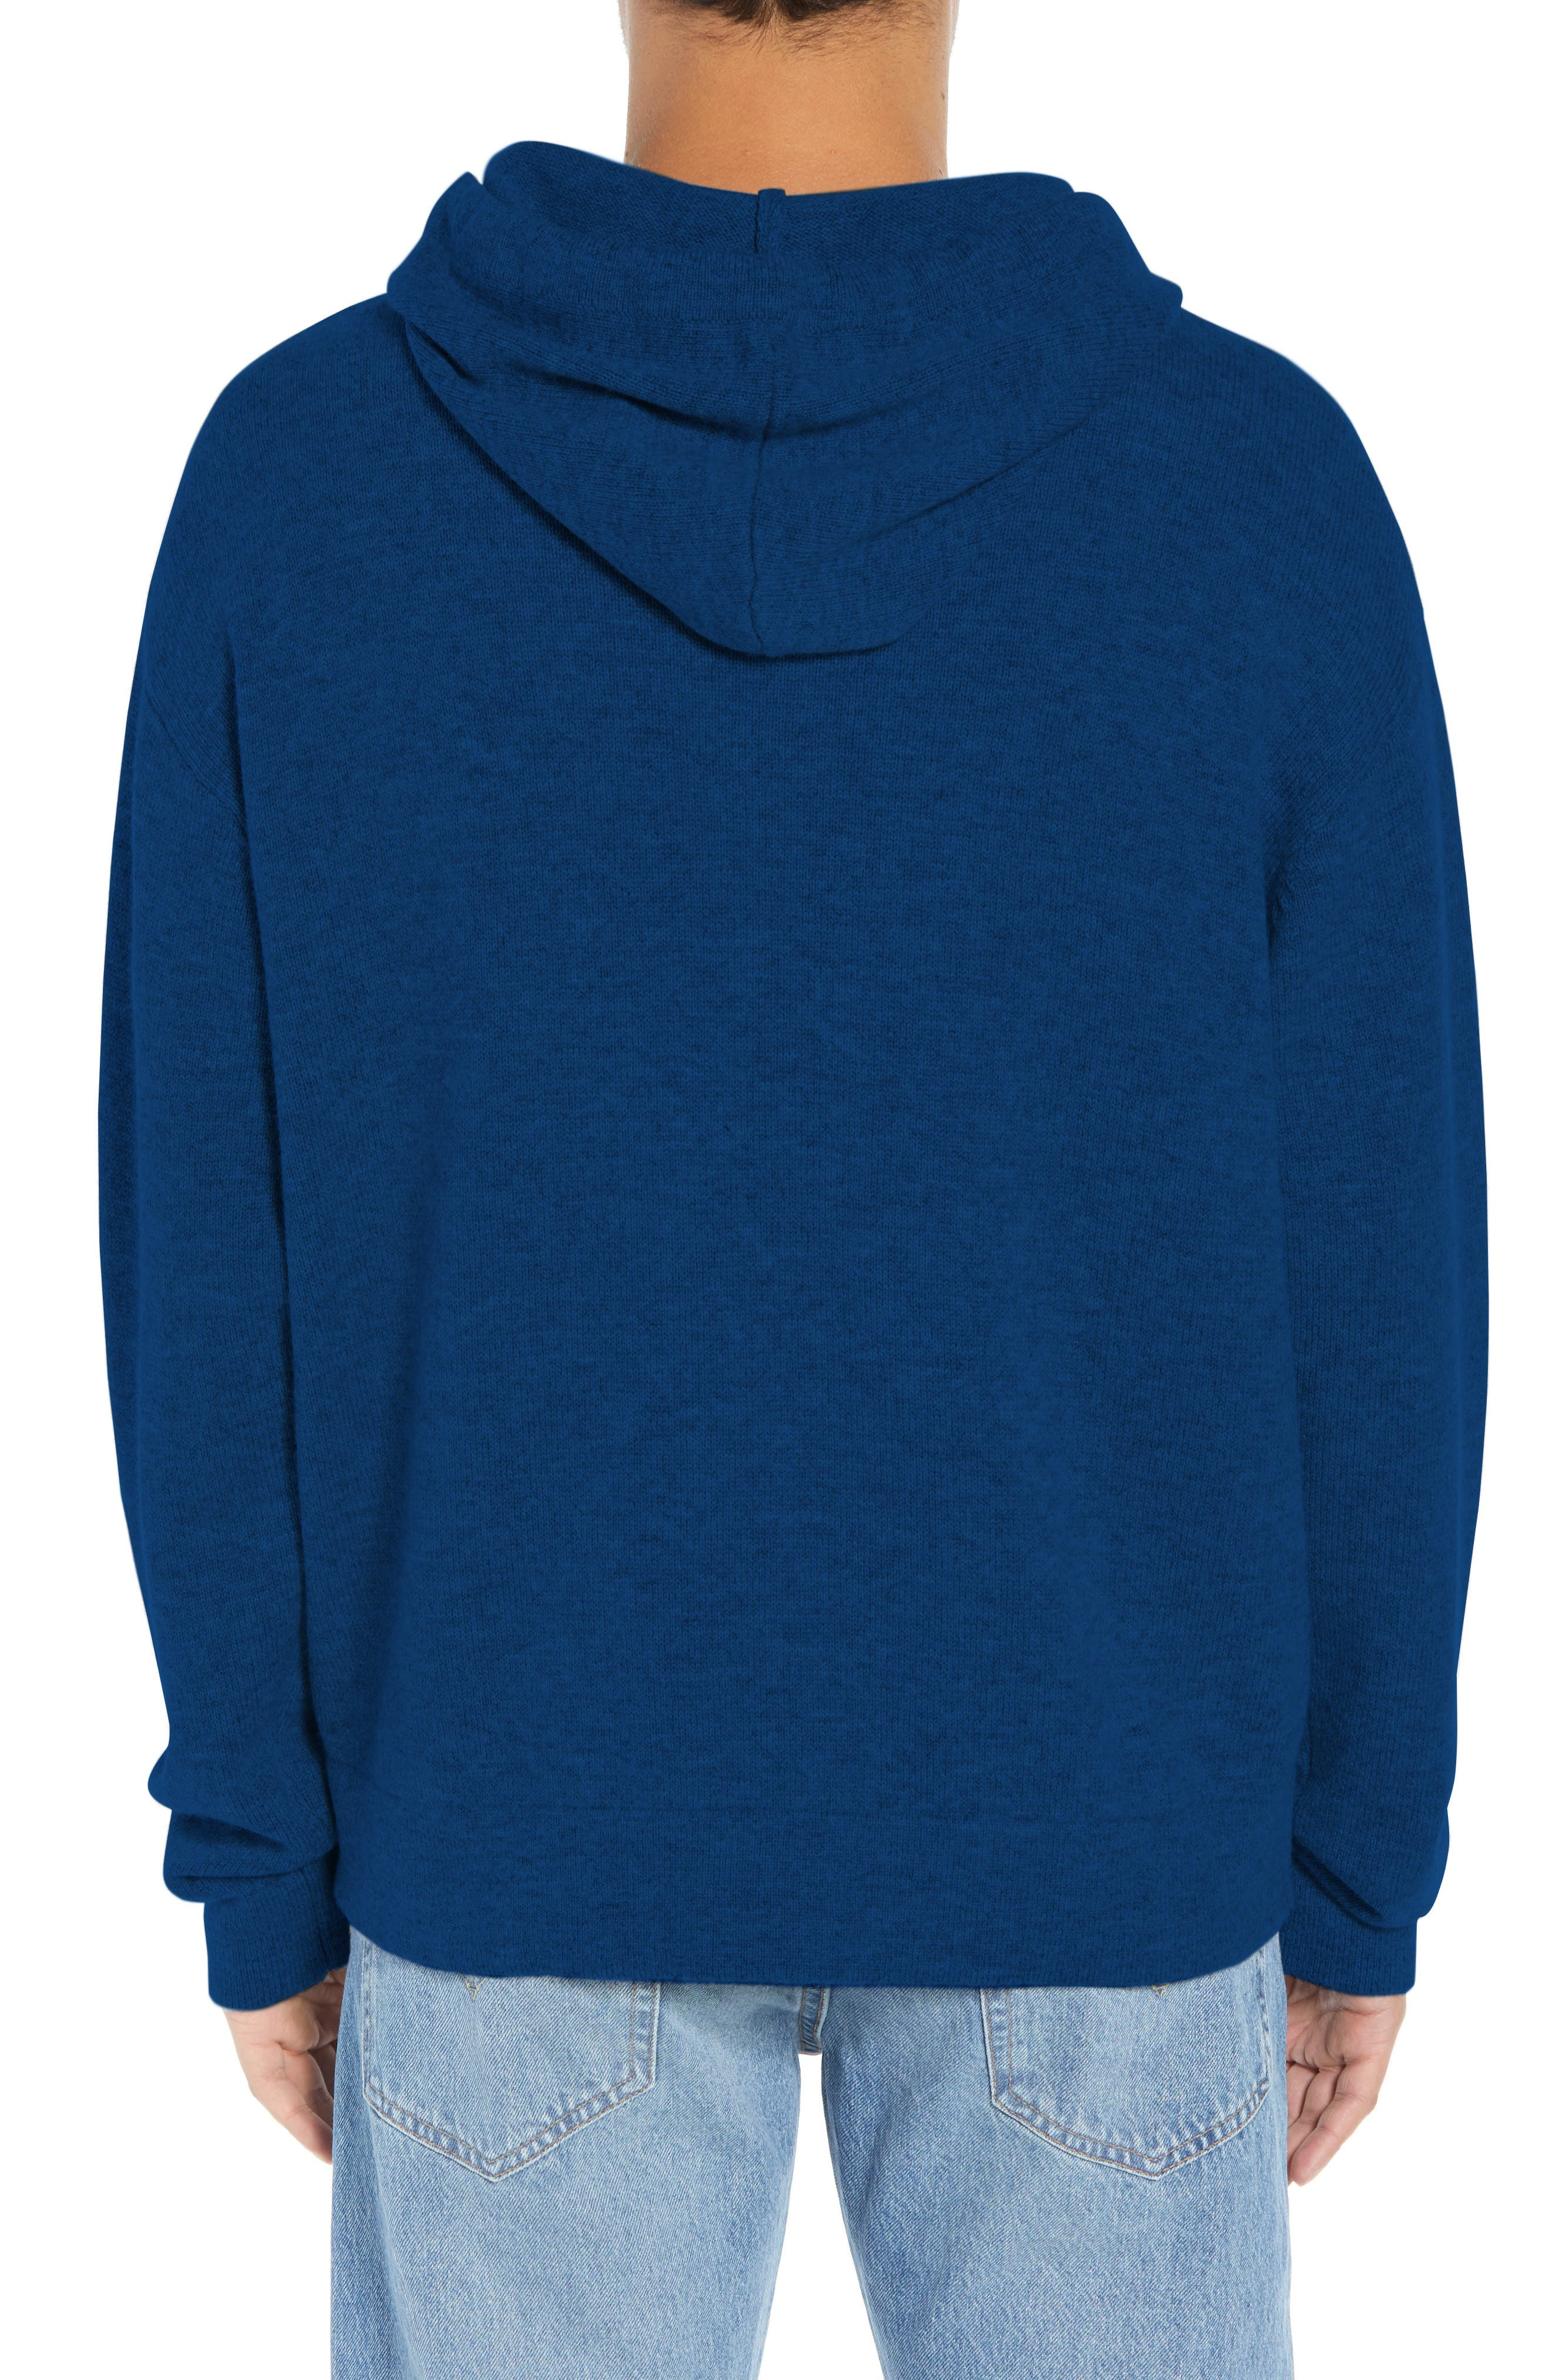 Classic Fit Hoodie Sweater,                             Alternate thumbnail 2, color,                             NAVY